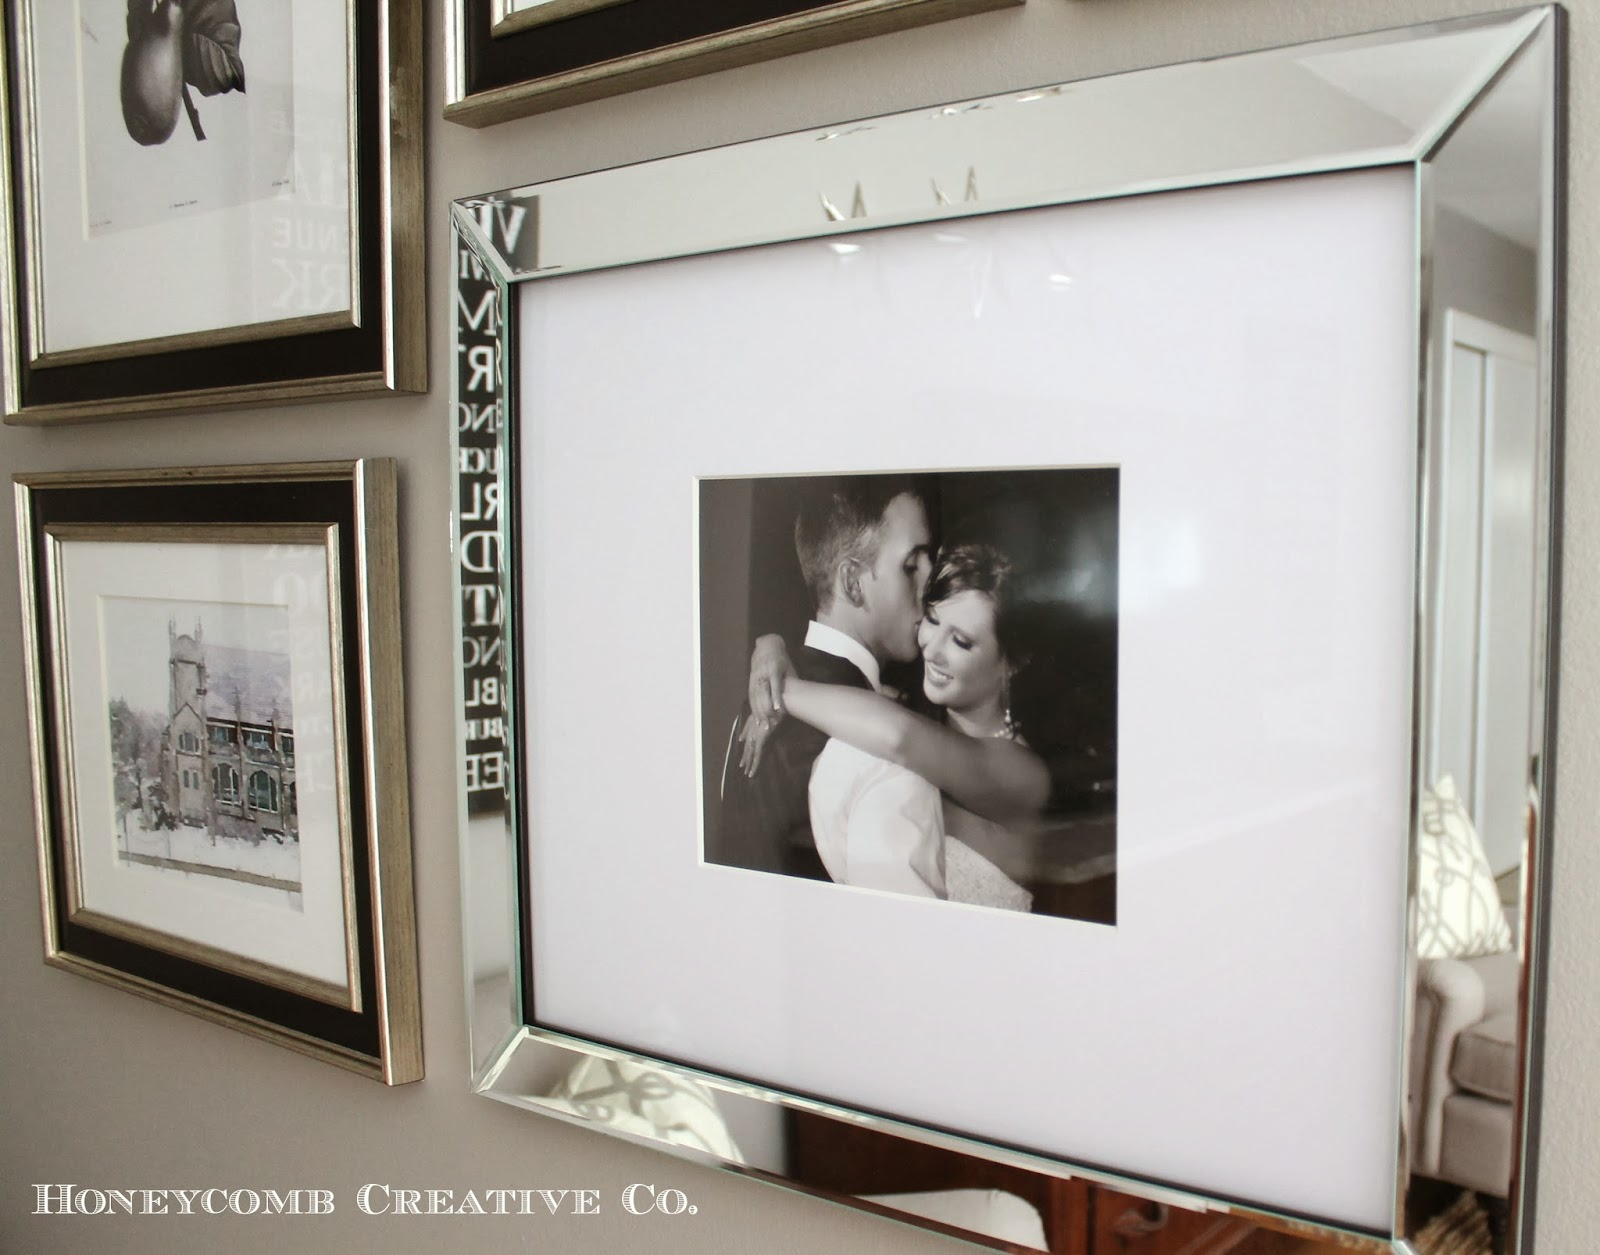 and one of my favorite images from our wedding looks gorgeous in this mirrored frame